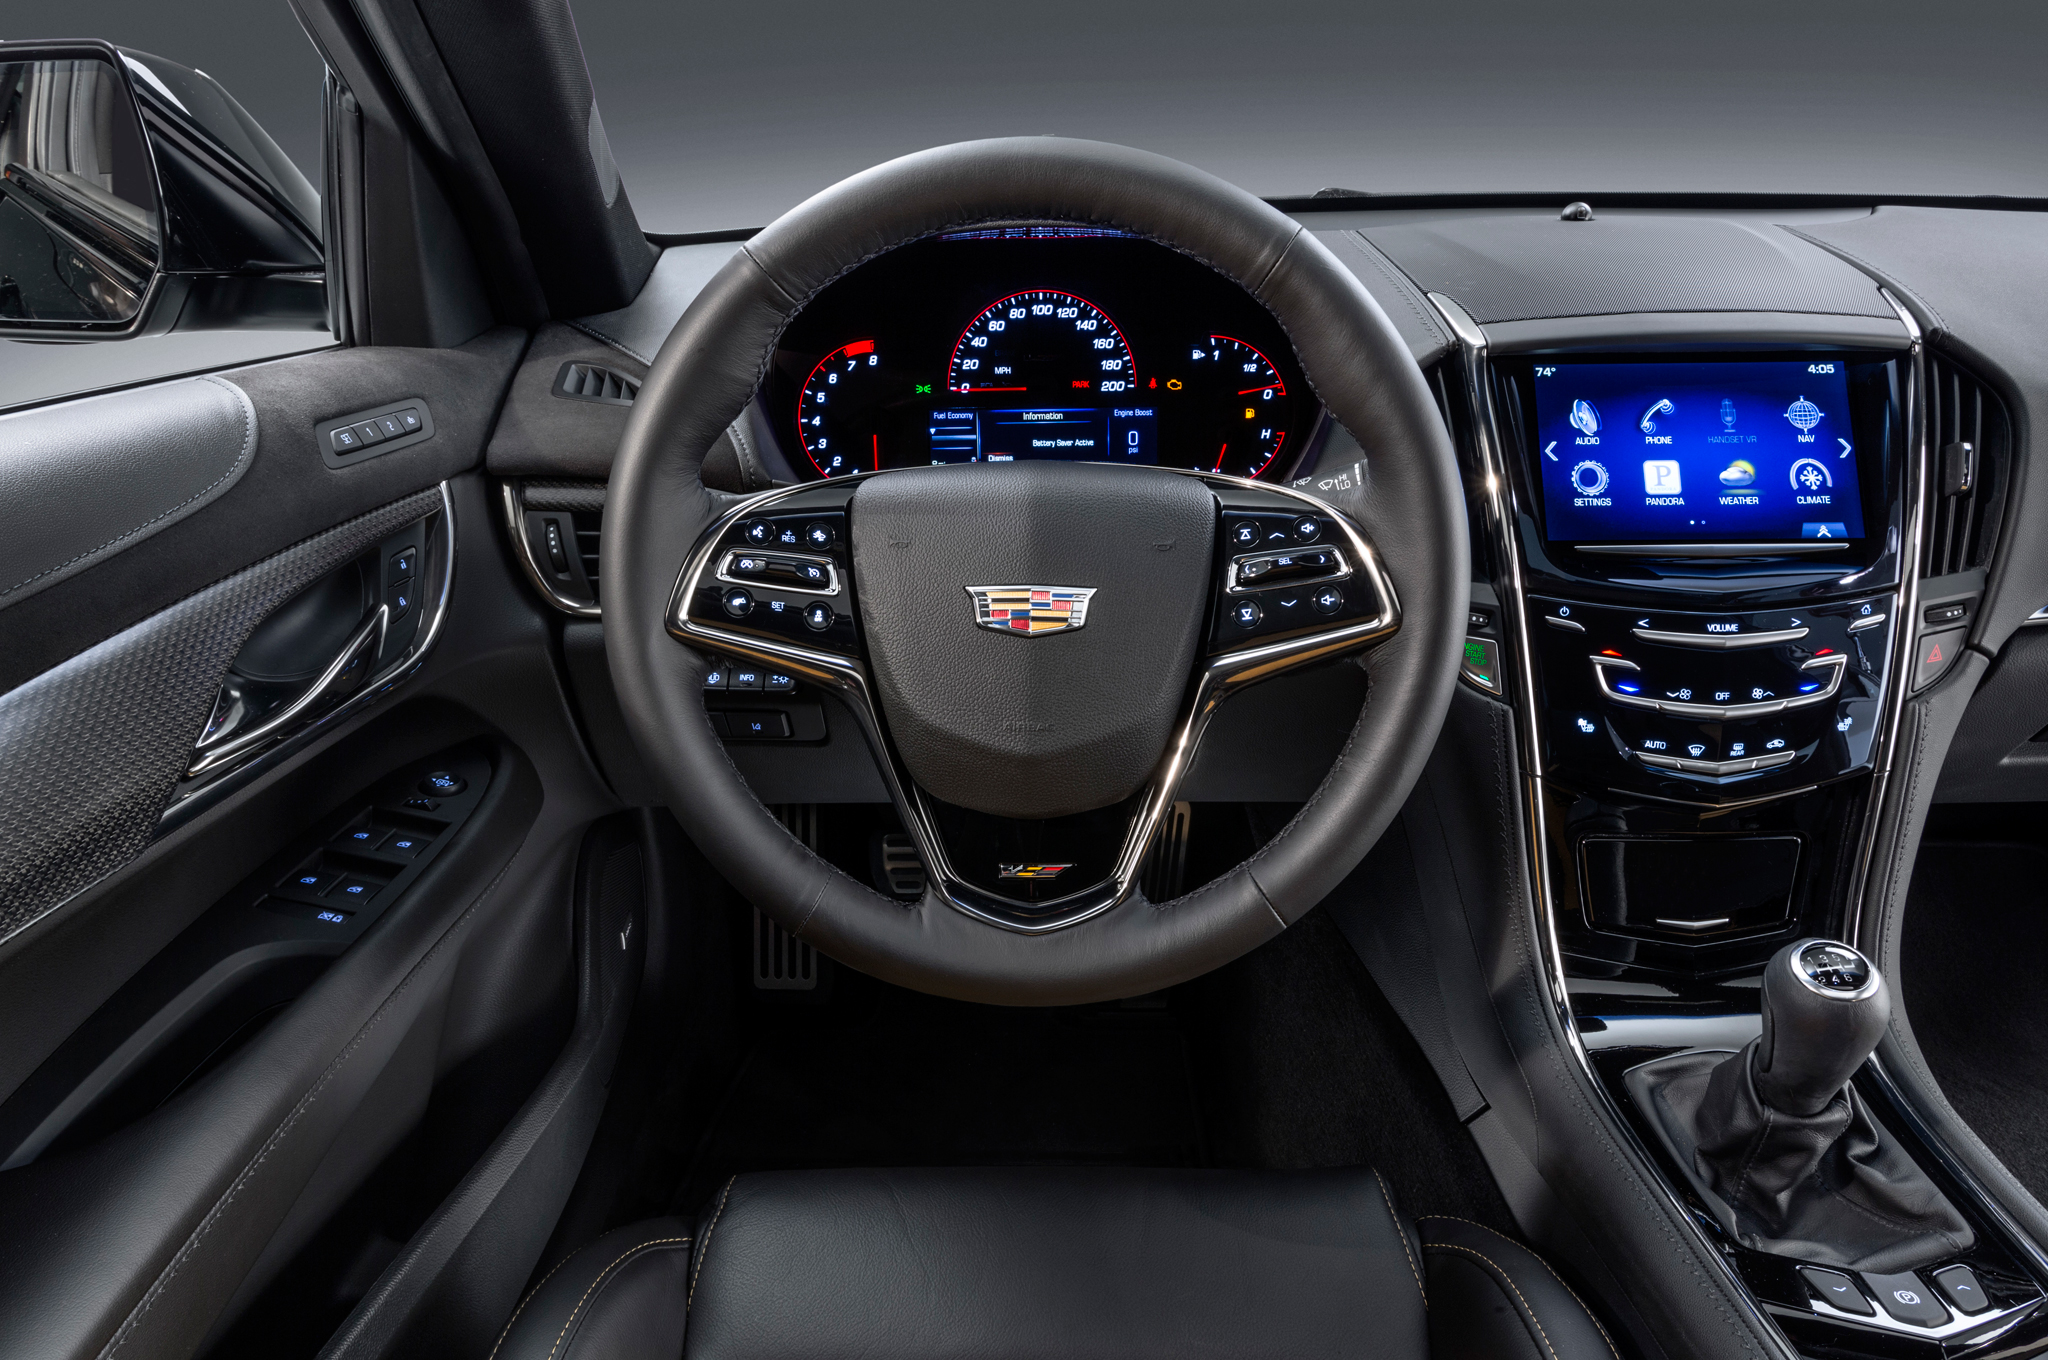 2016 Cadillac Ats V Cockpit And Speedometer (View 14 of 18)